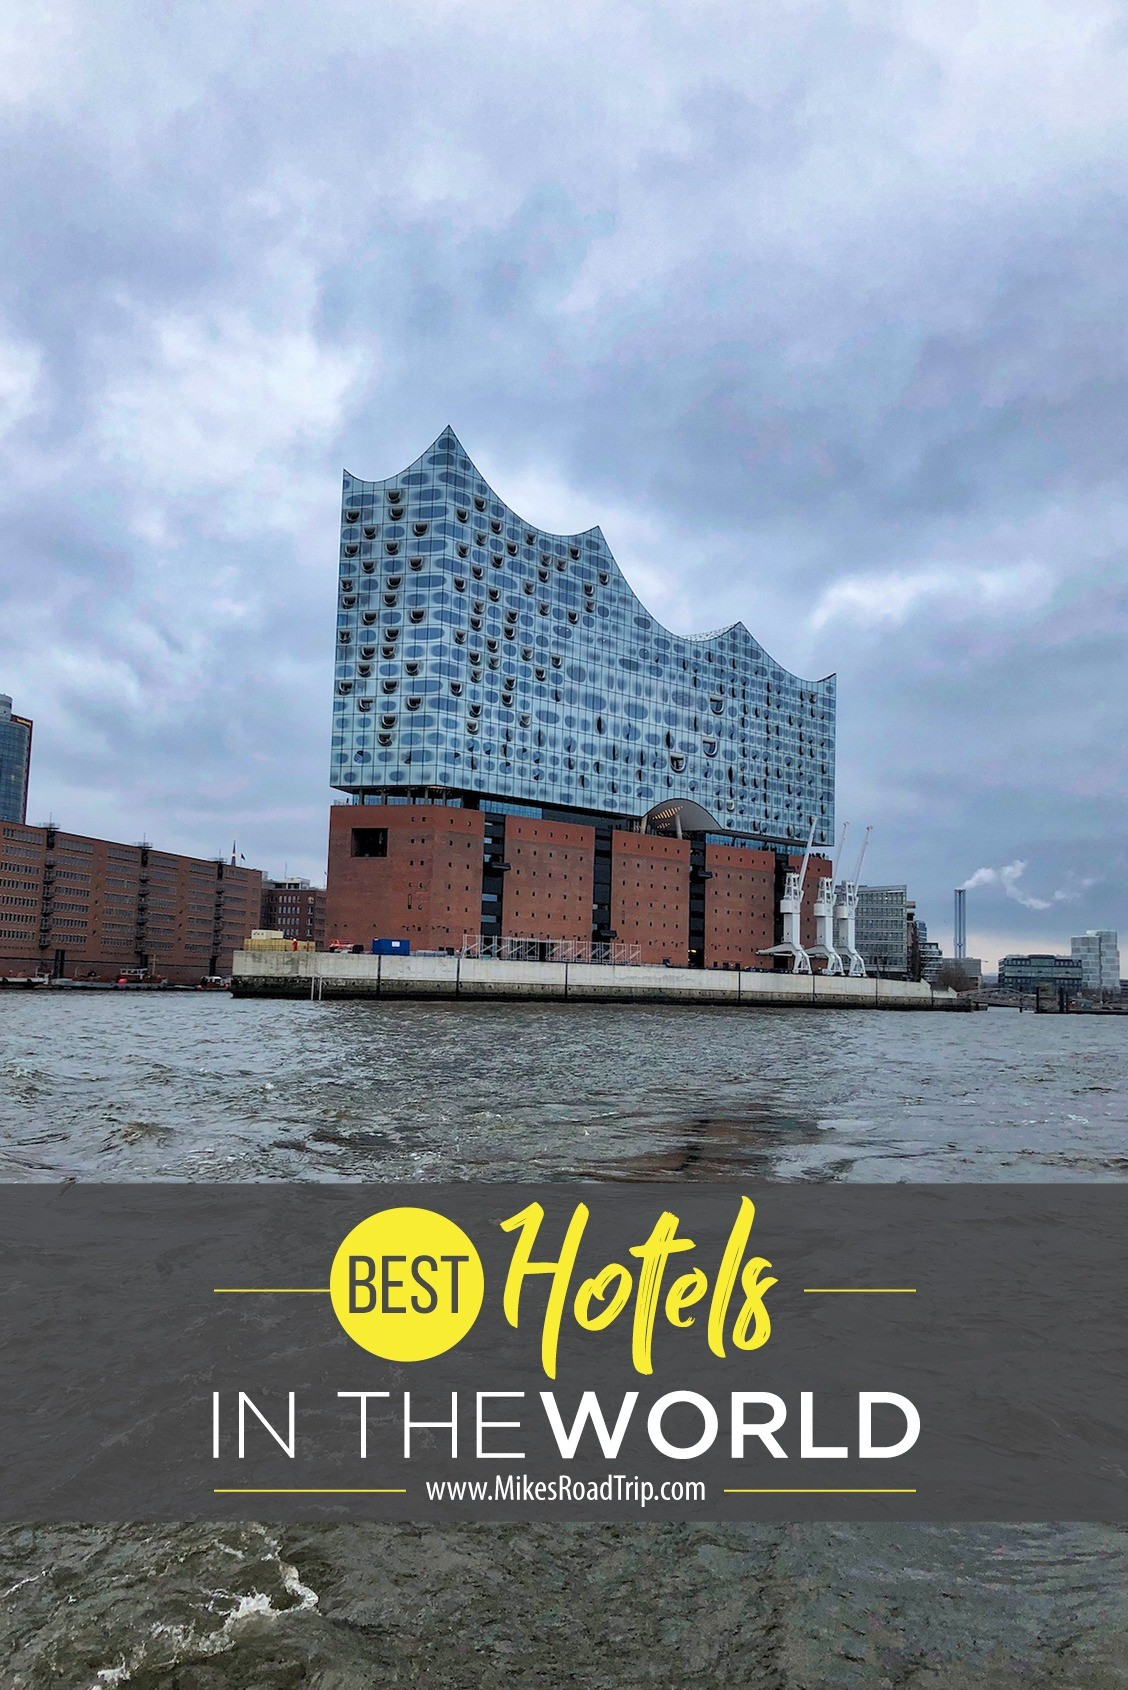 Best Hotels in the world - A bucket list for lodging.